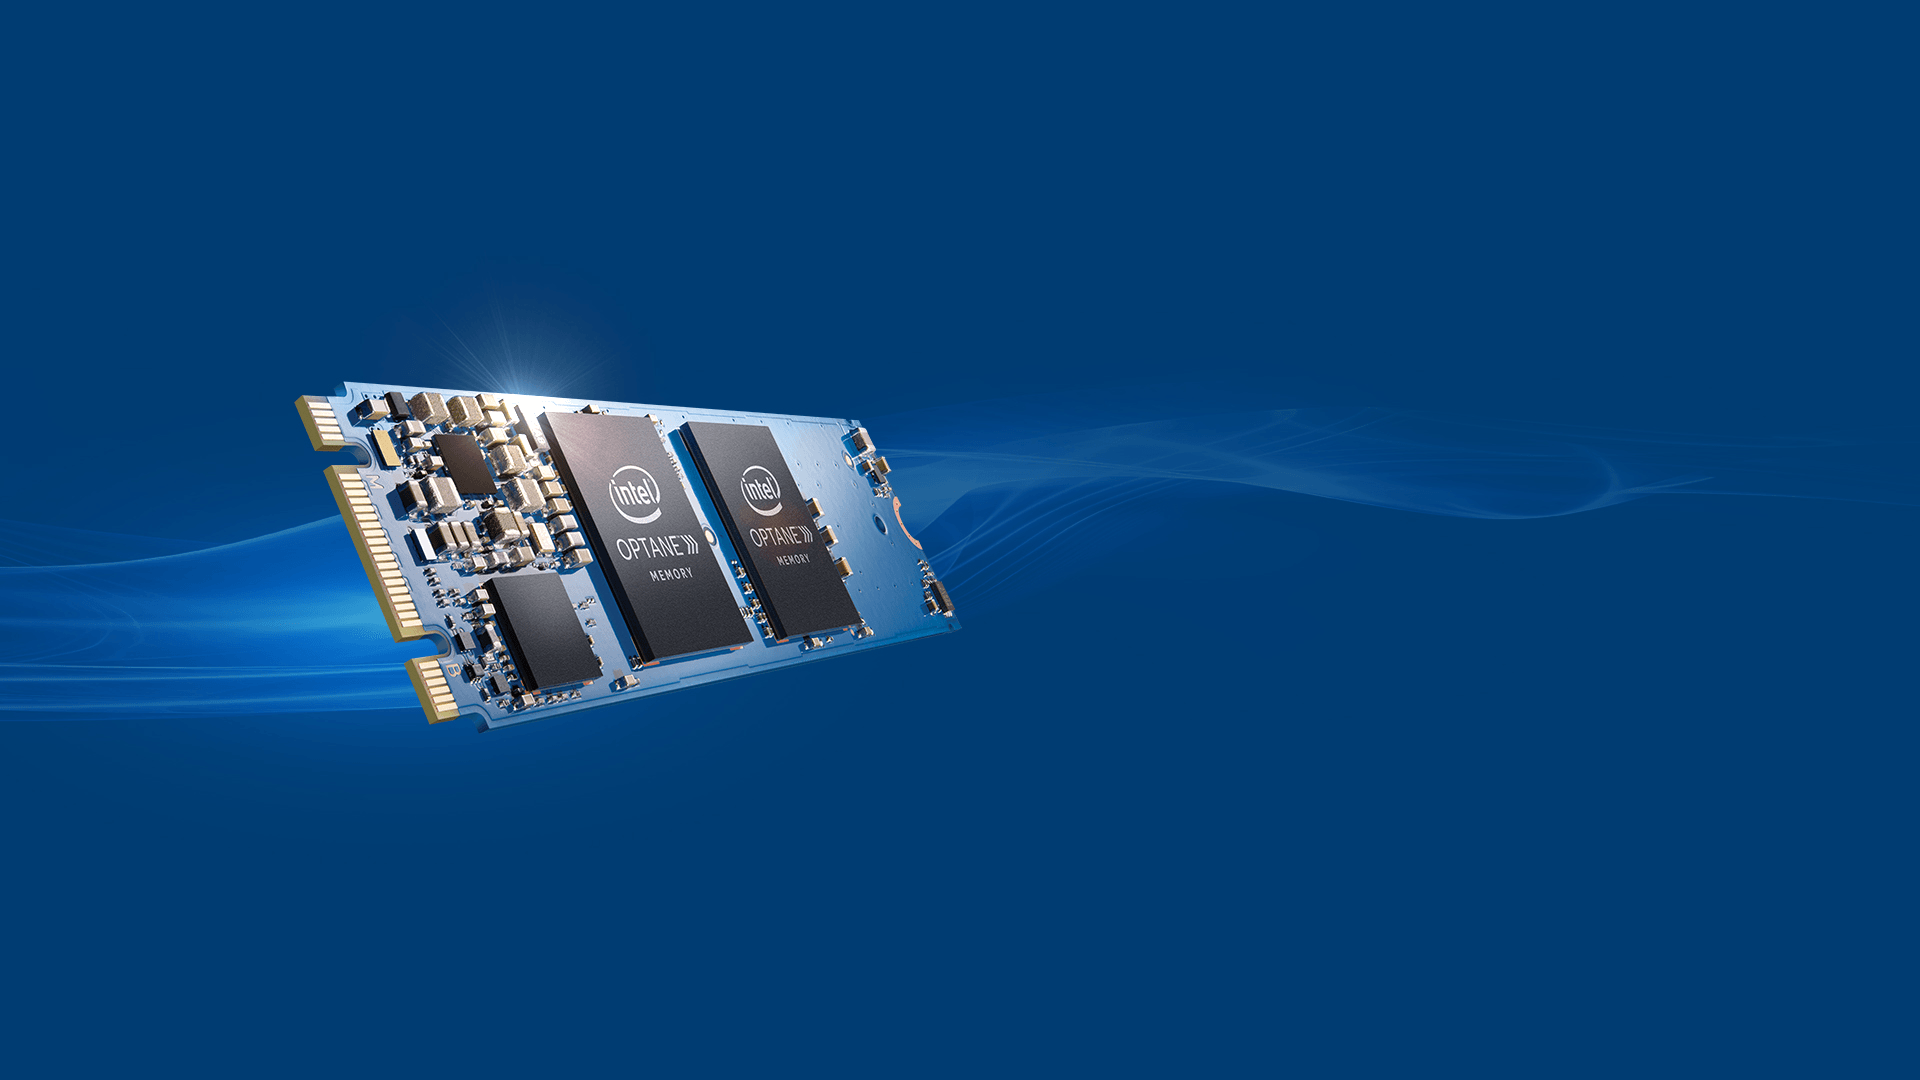 optane-memory-product-angle-full-bleed-16x9.png.rendition.intel.web.1920.1080